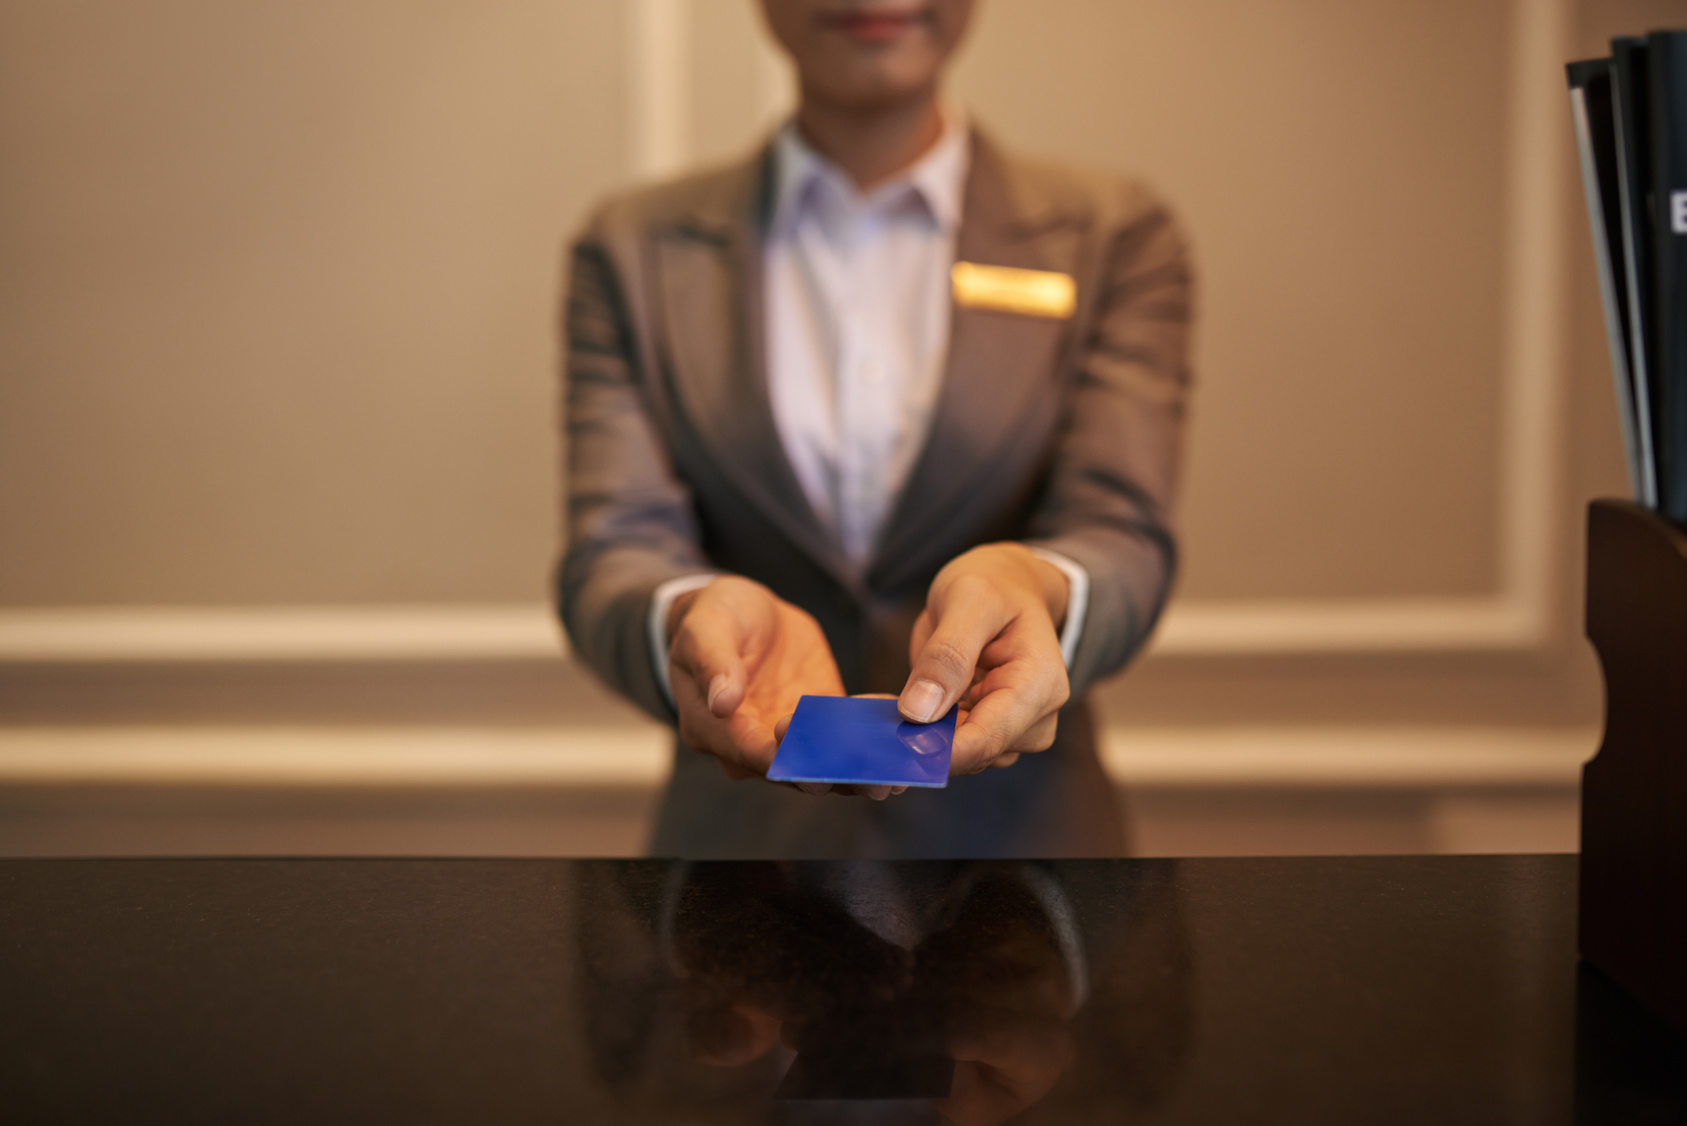 Hotel staff member handing key card to camera